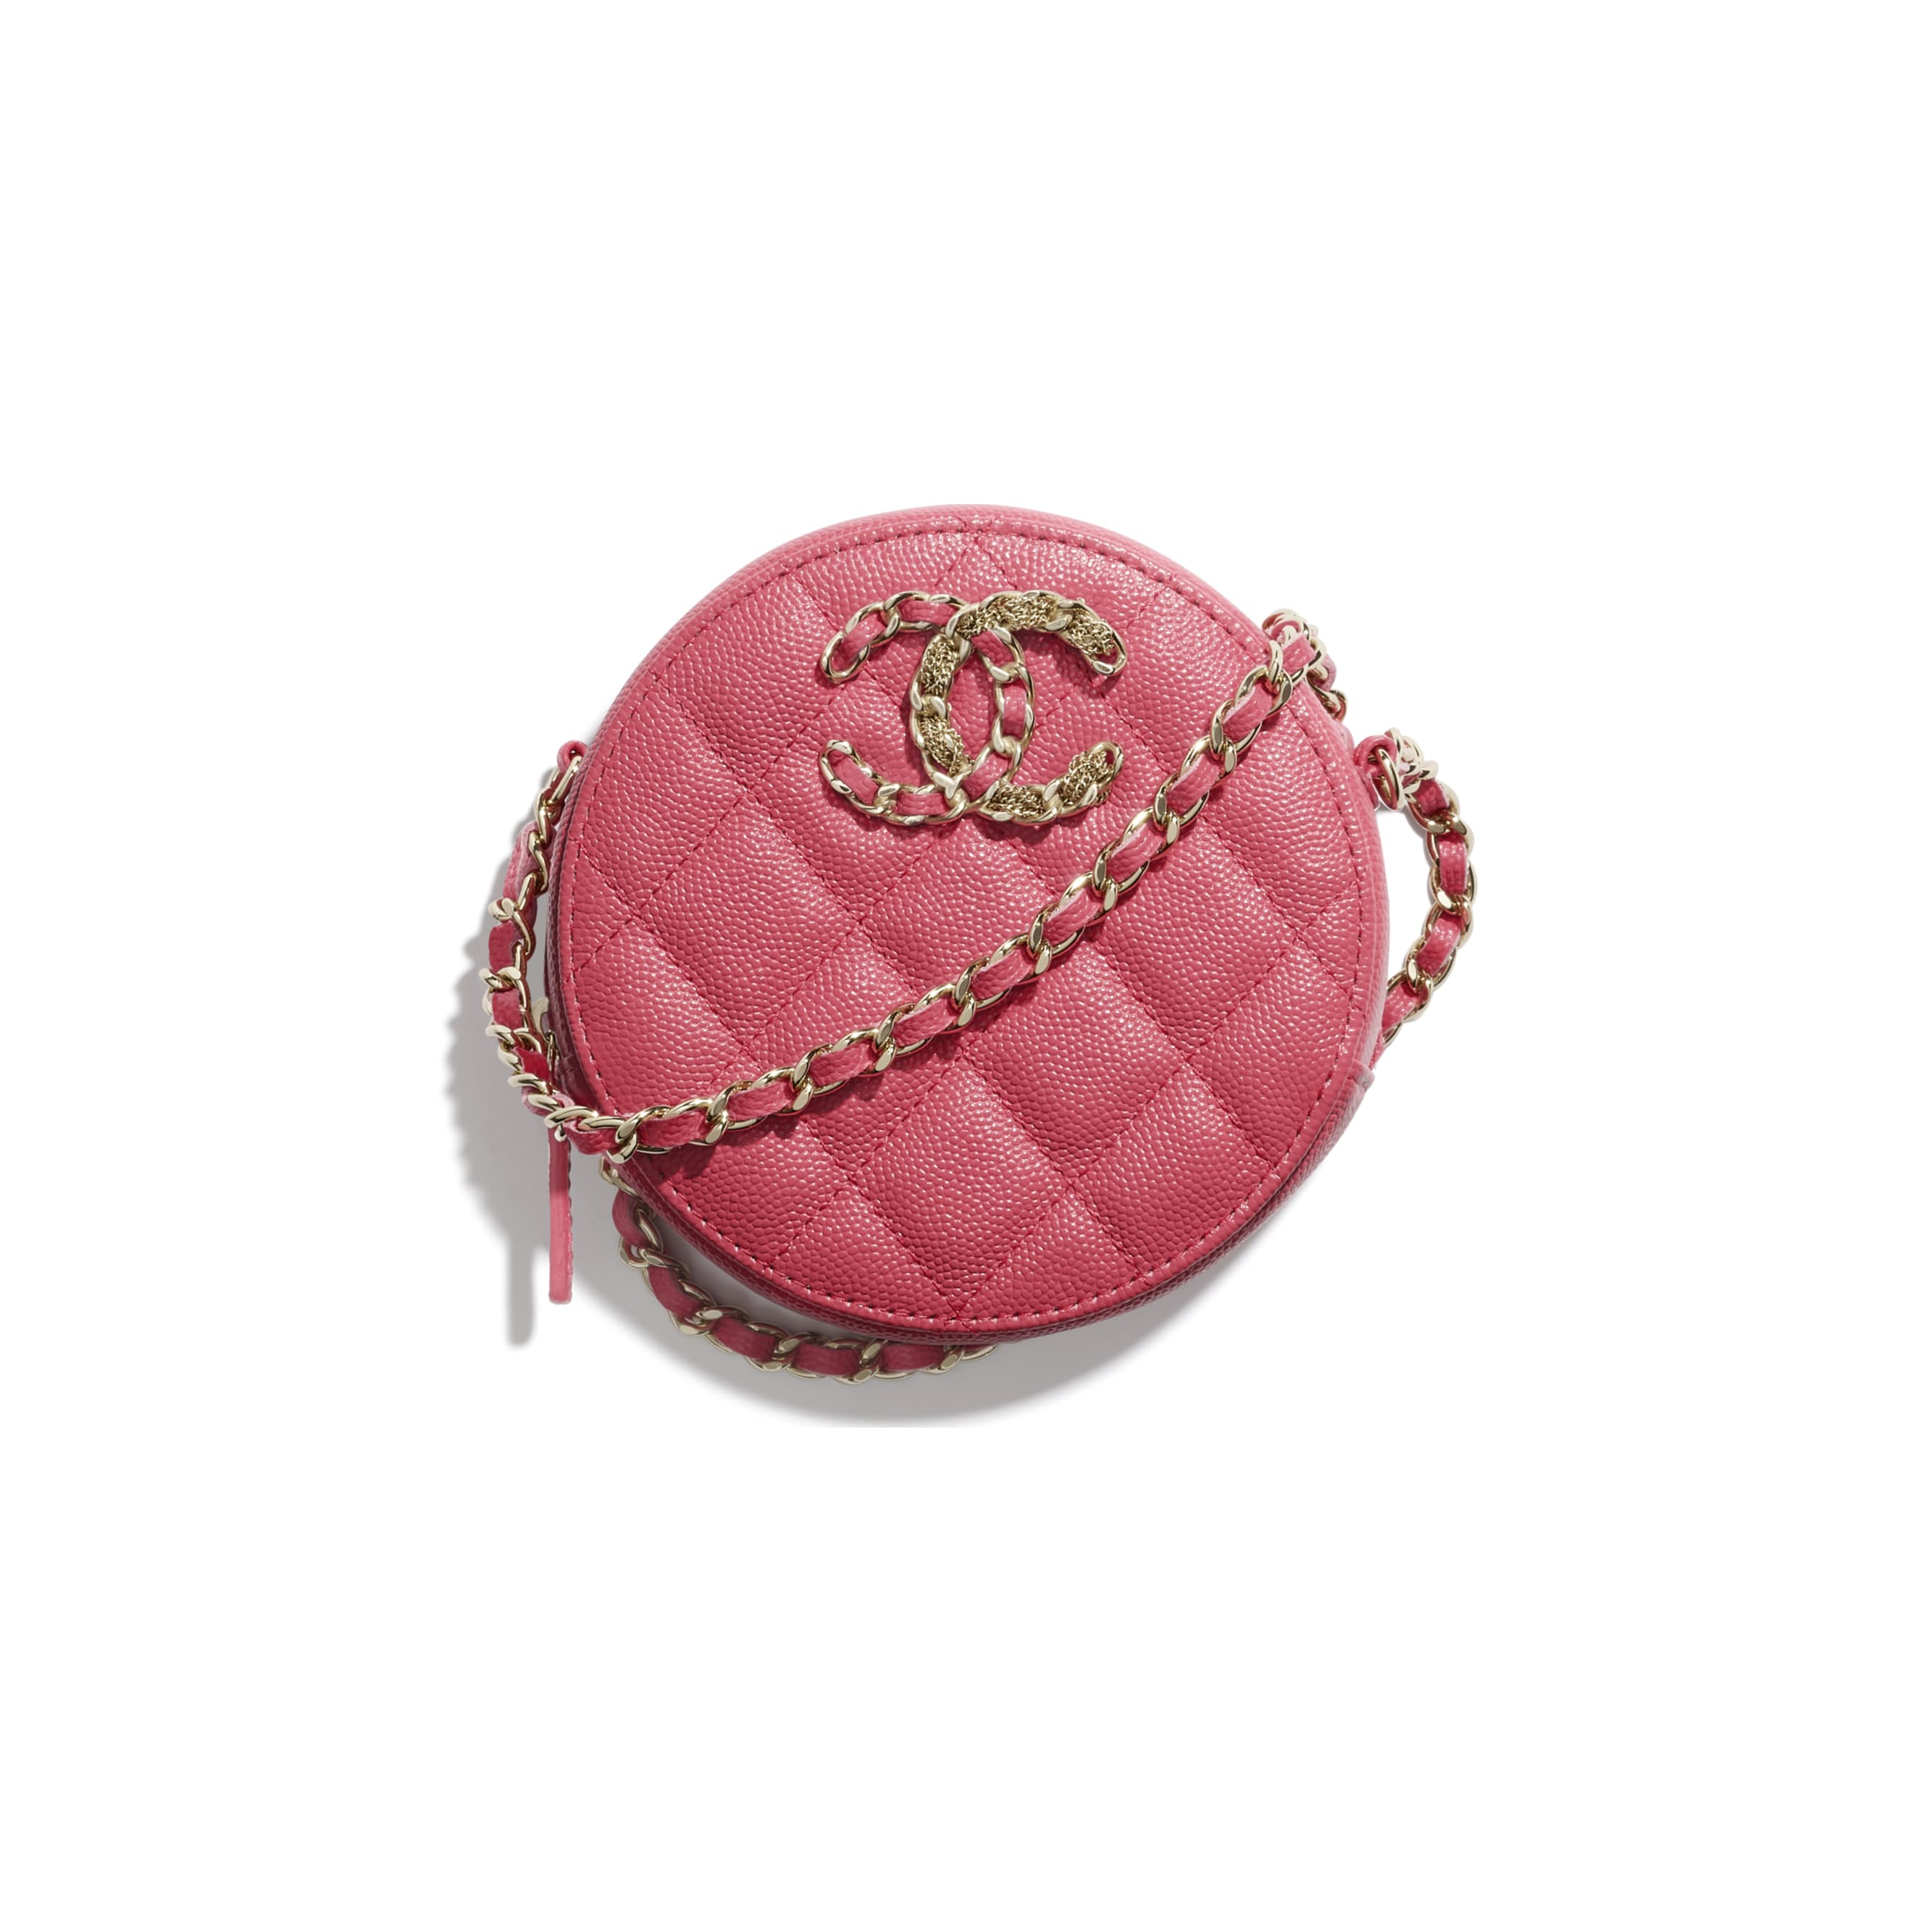 Clutch With Chain - Pink - Grained Calfskin & Gold-Tone Metal - CHANEL - Default view - see standard sized version